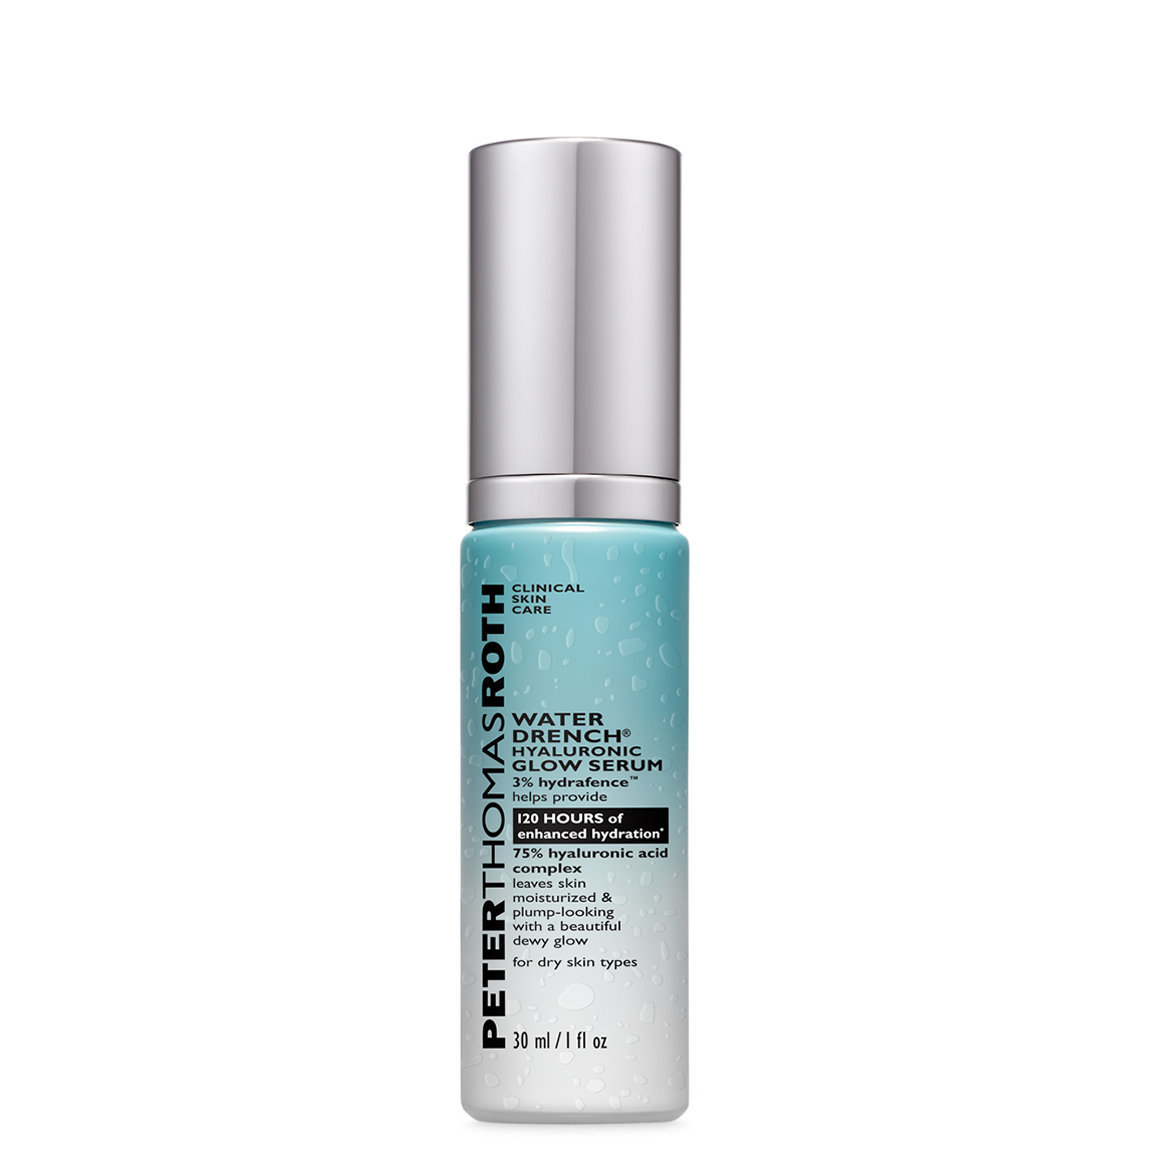 Peter Thomas Roth Water Drench Hyaluronic Glow Serum alternative view 1 - product swatch.